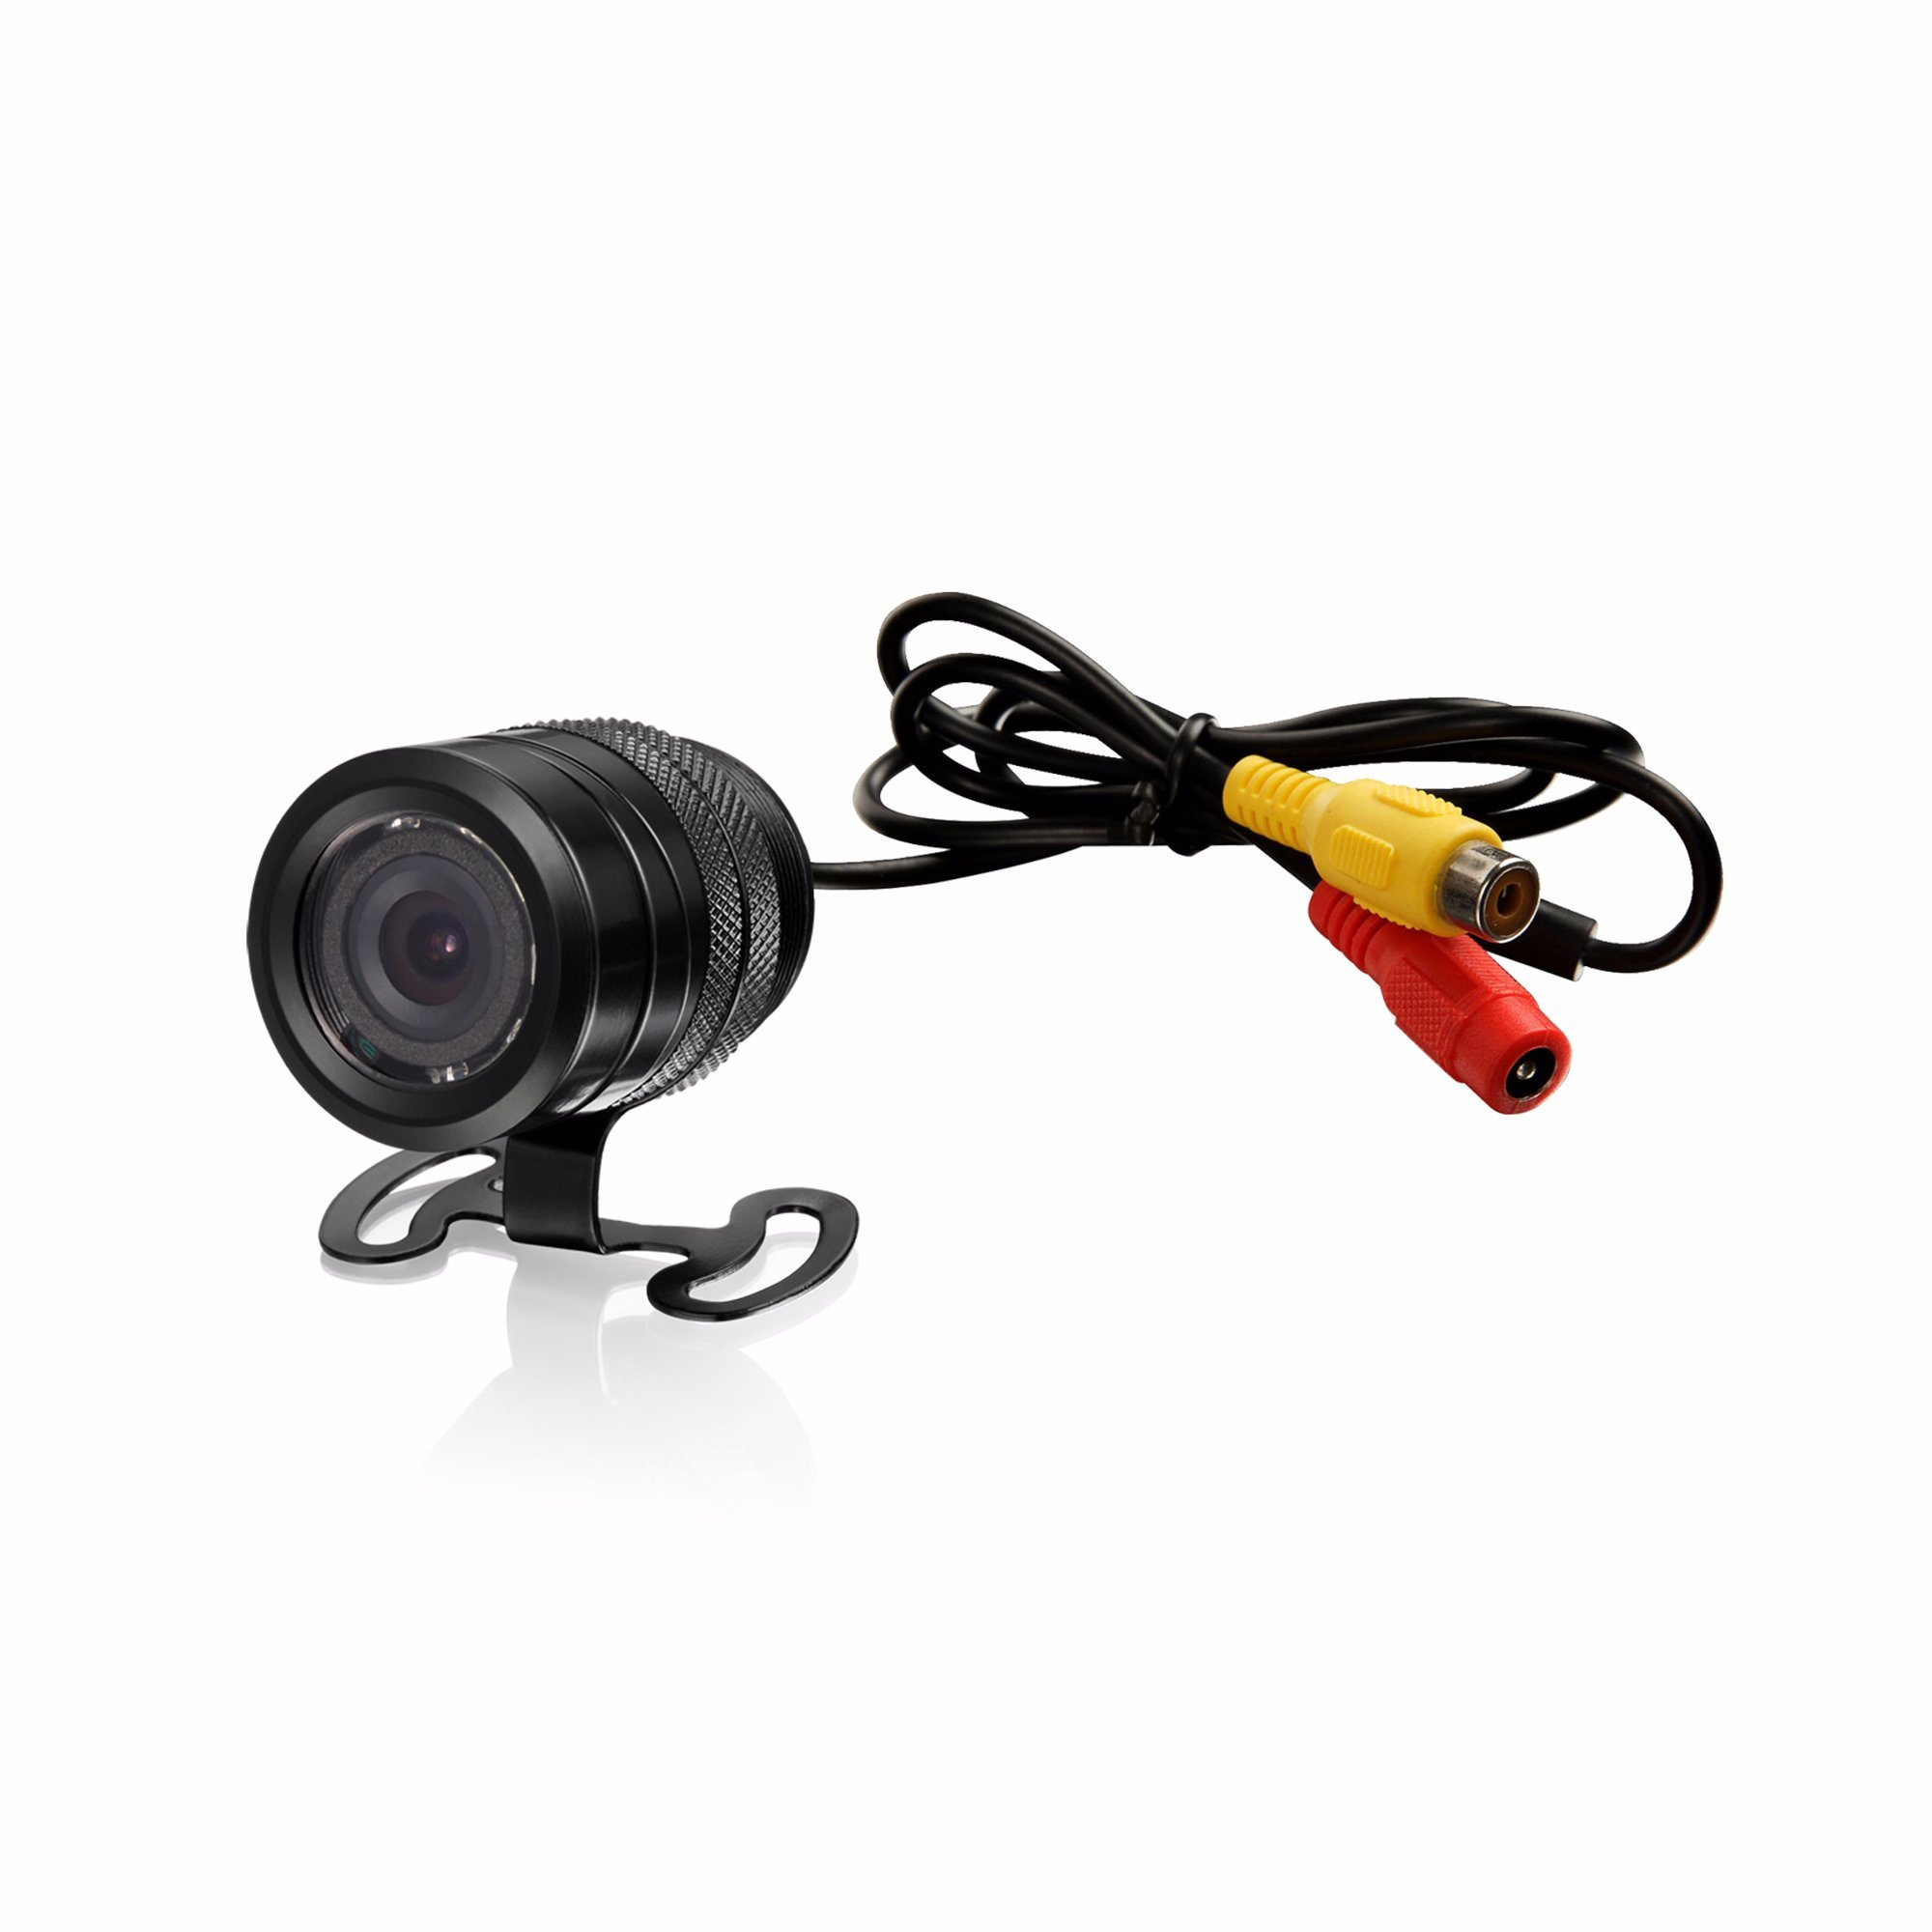 Wireless Backup Camera System with Cigarette Lighter Adapter